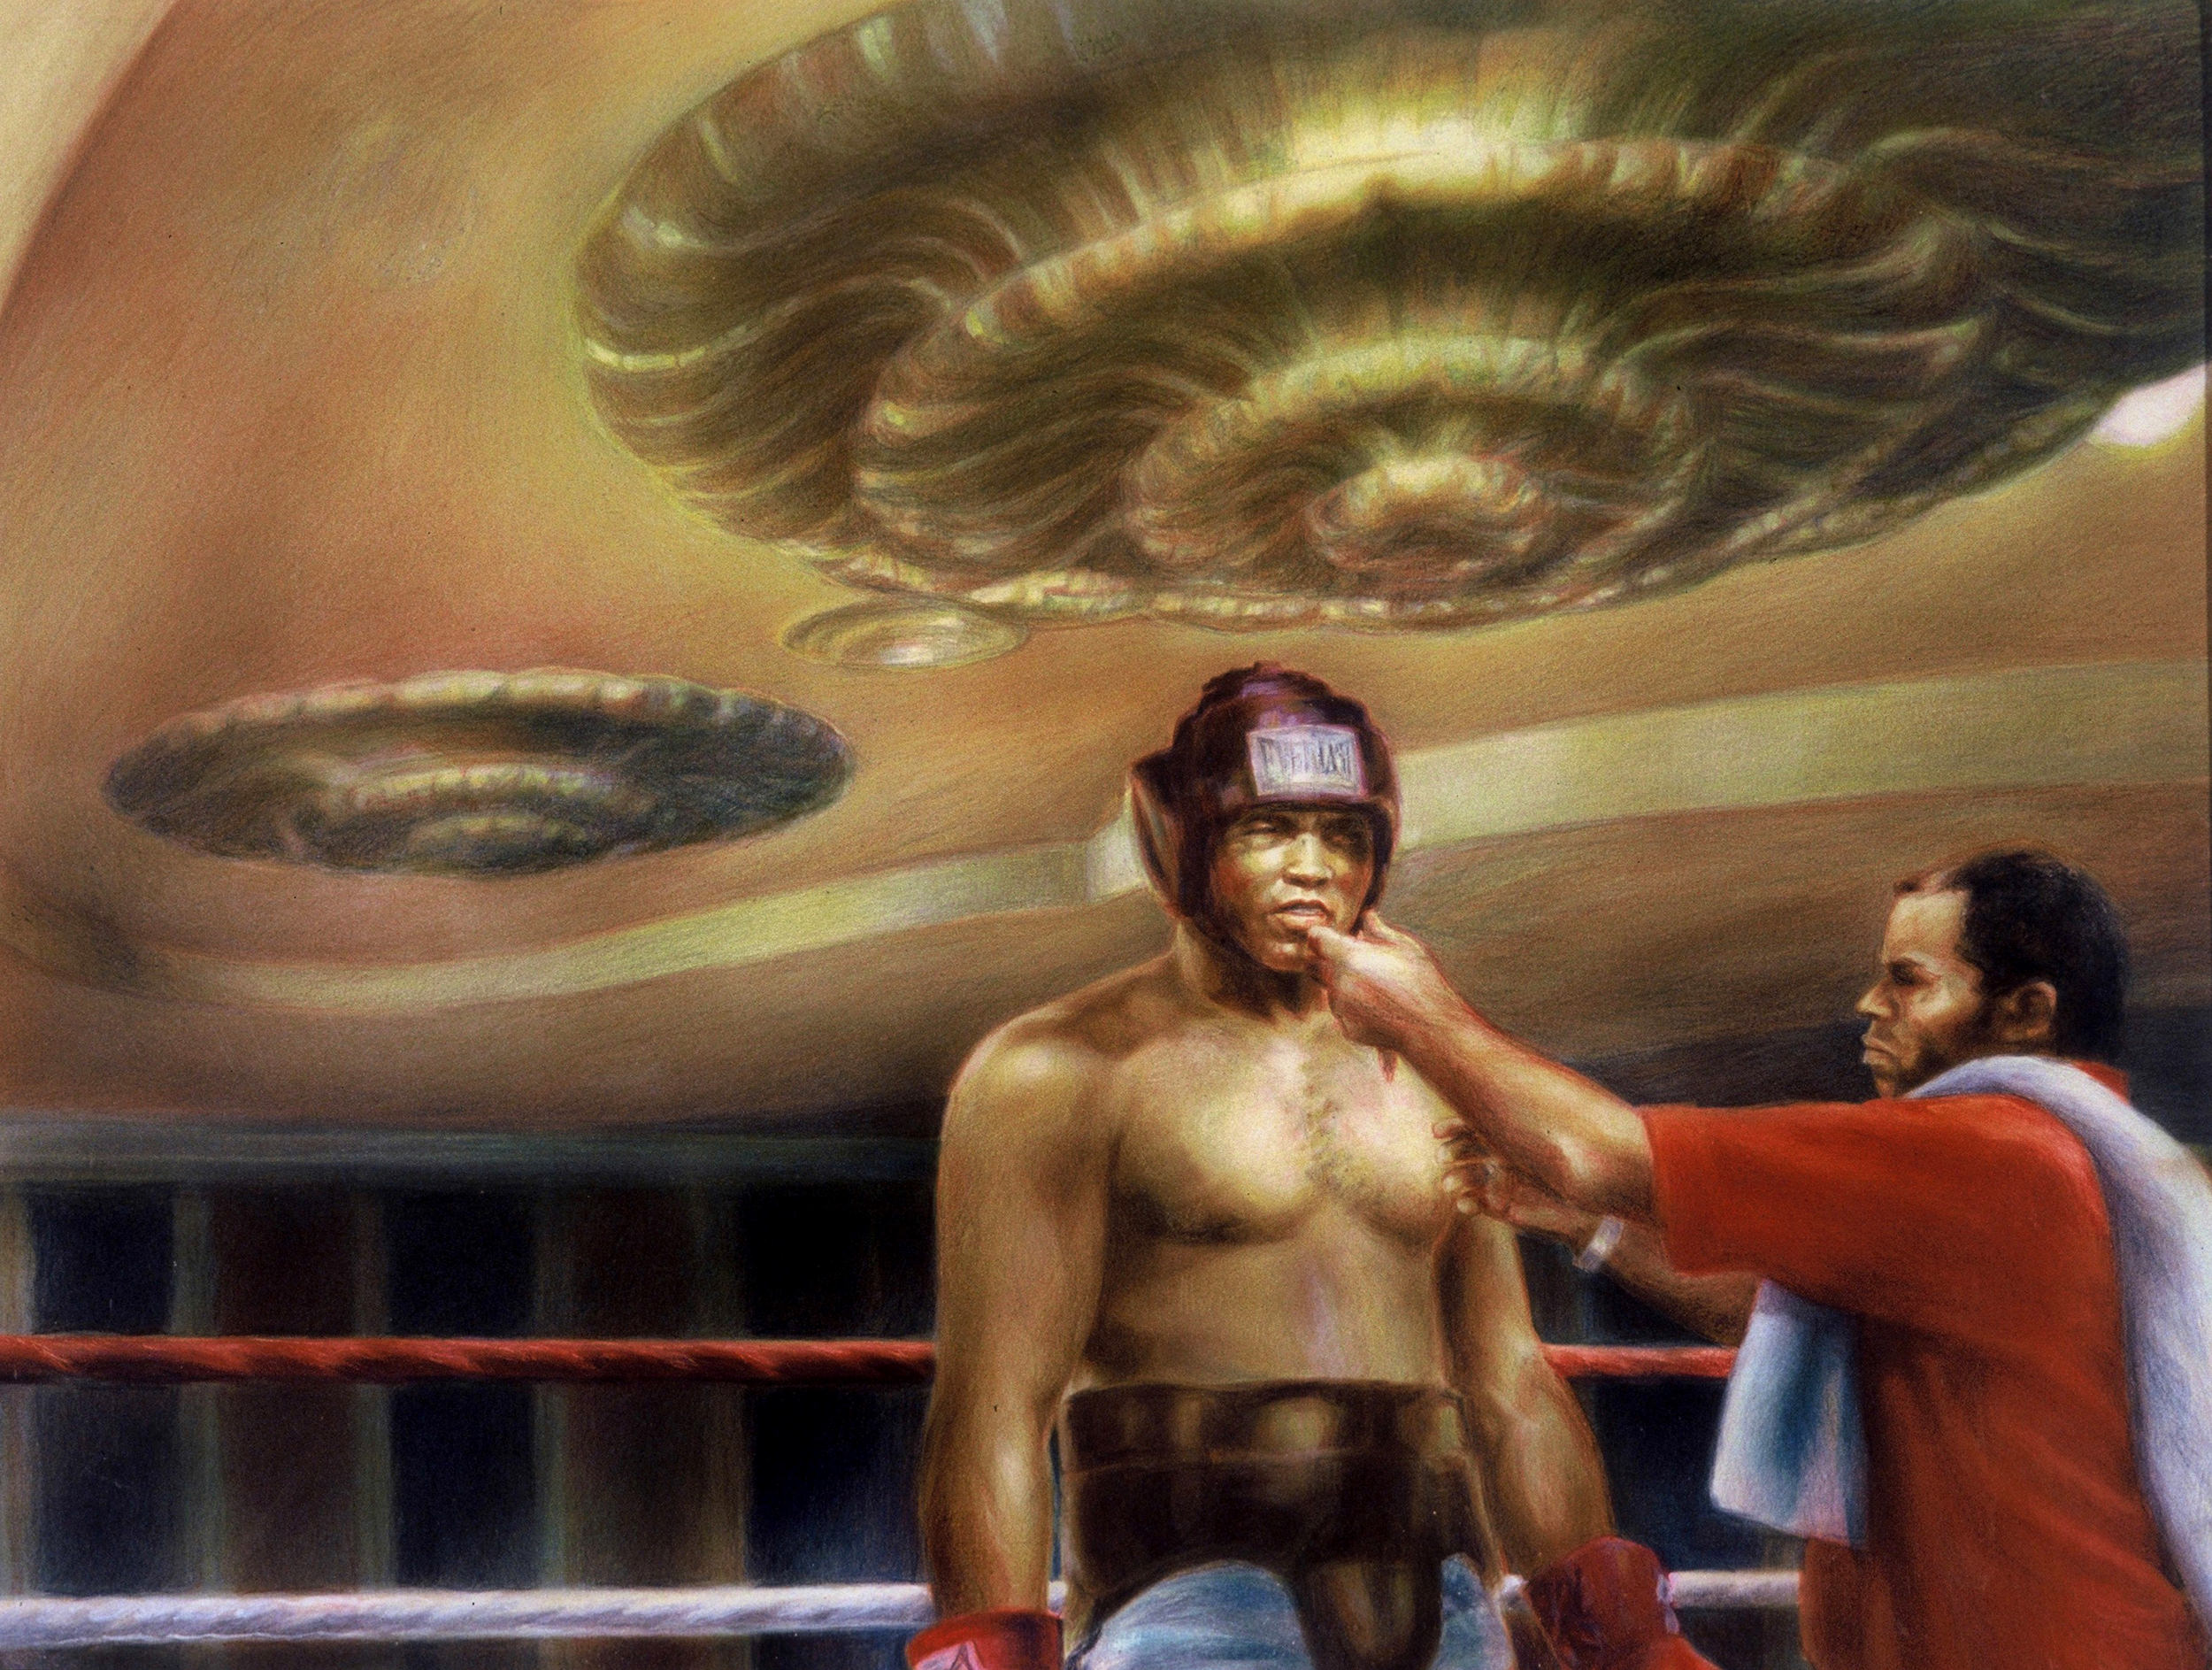 Muhammad Ali as depicted by Guy Peellaert in  Caesars Palace  (1985) from the  Las Vegas, The Big Room  series (1976-1986)